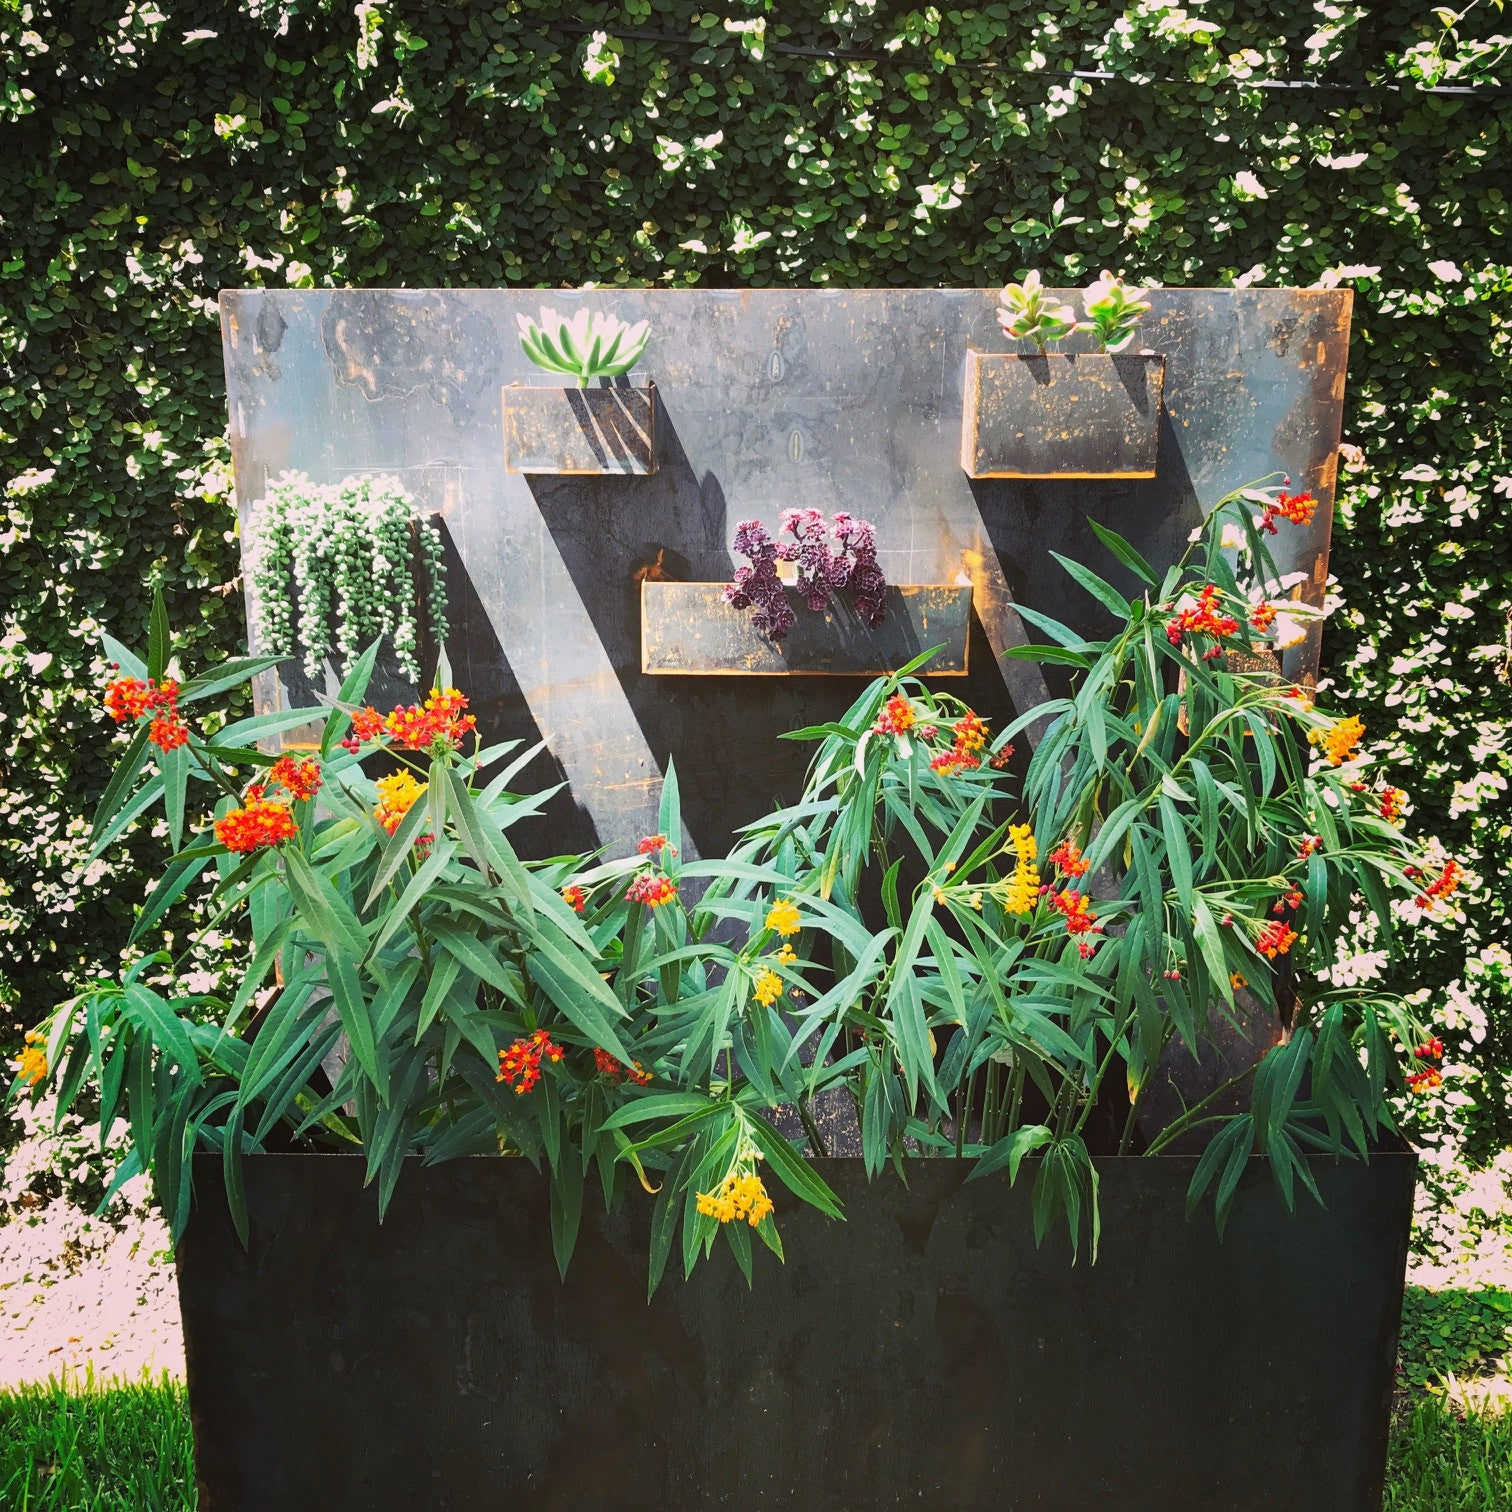 Corten planter made to weather outside